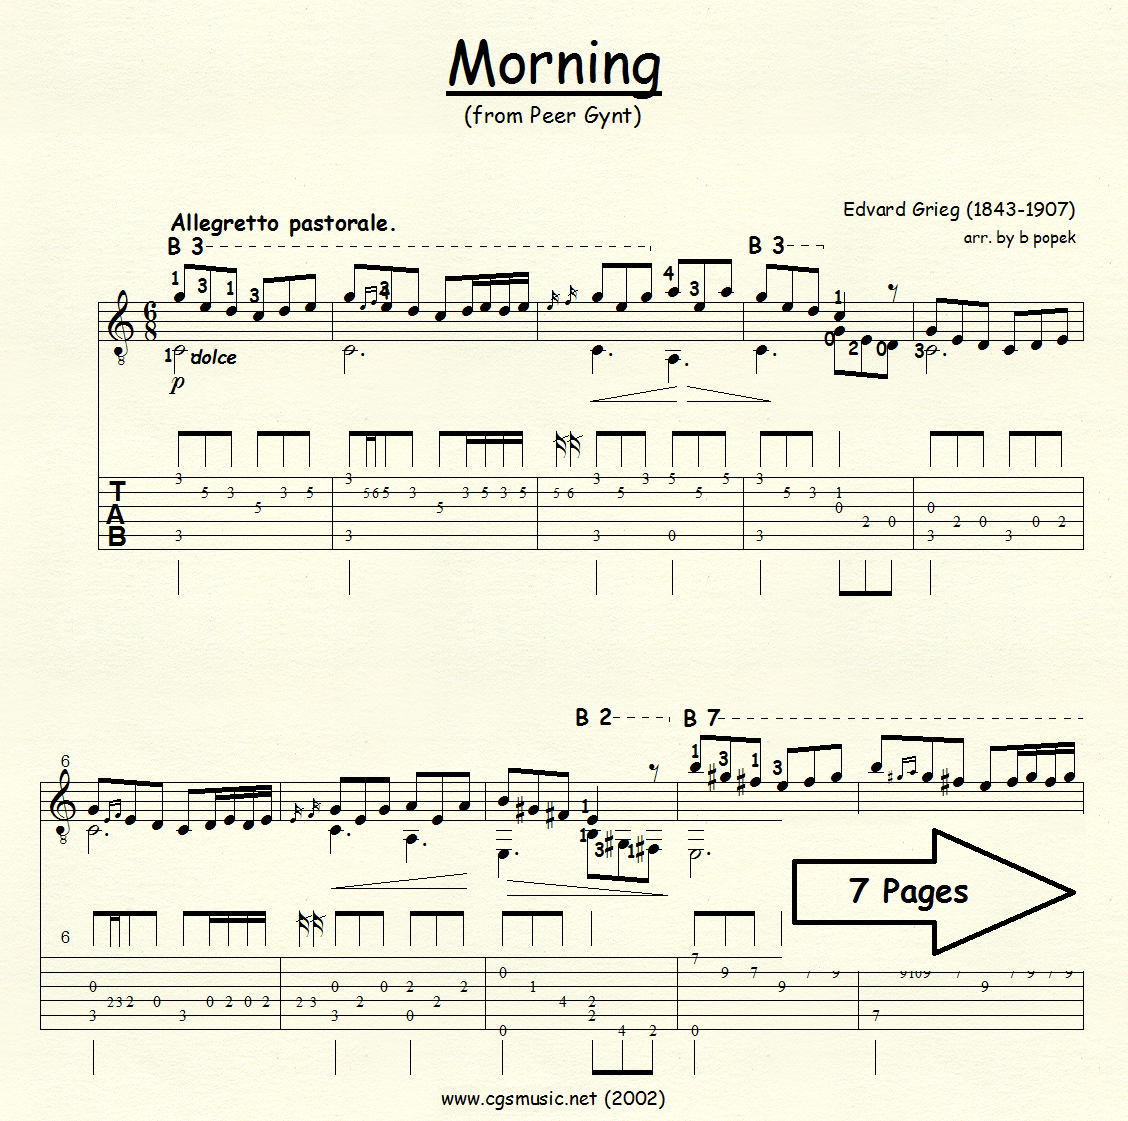 Morning (Grieg) for Classical Guitar in Tablature